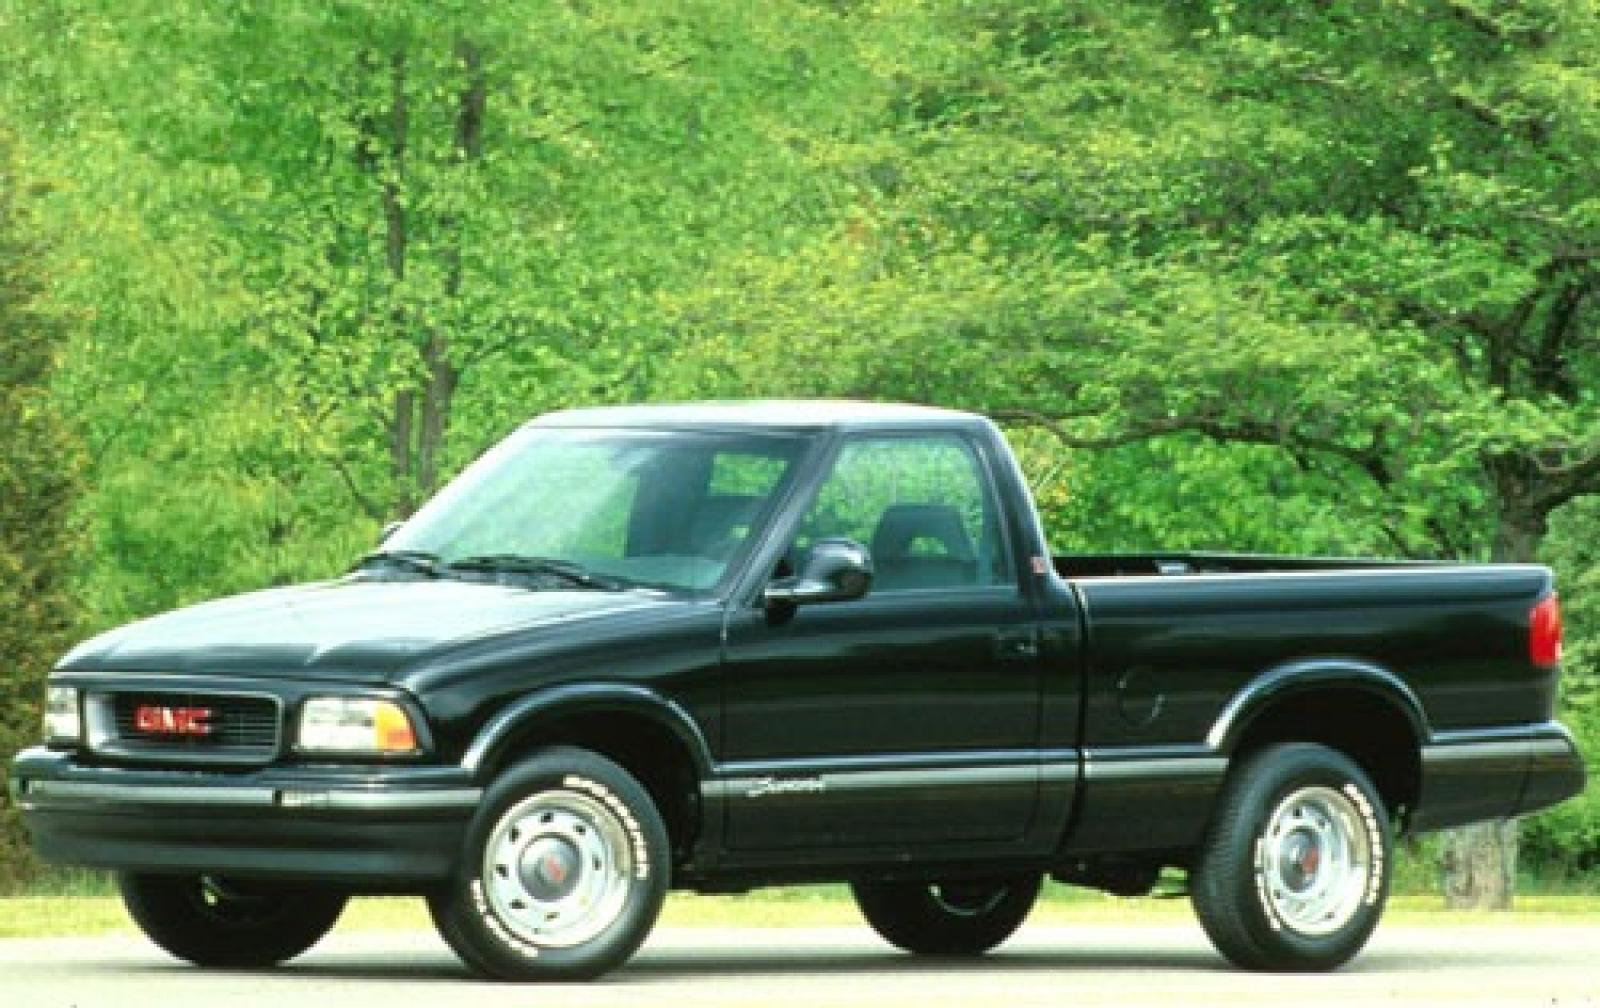 Wiring Diagram 92 Chevy Pickup Simple 1992 Ford Tempo Cavalier Nissan